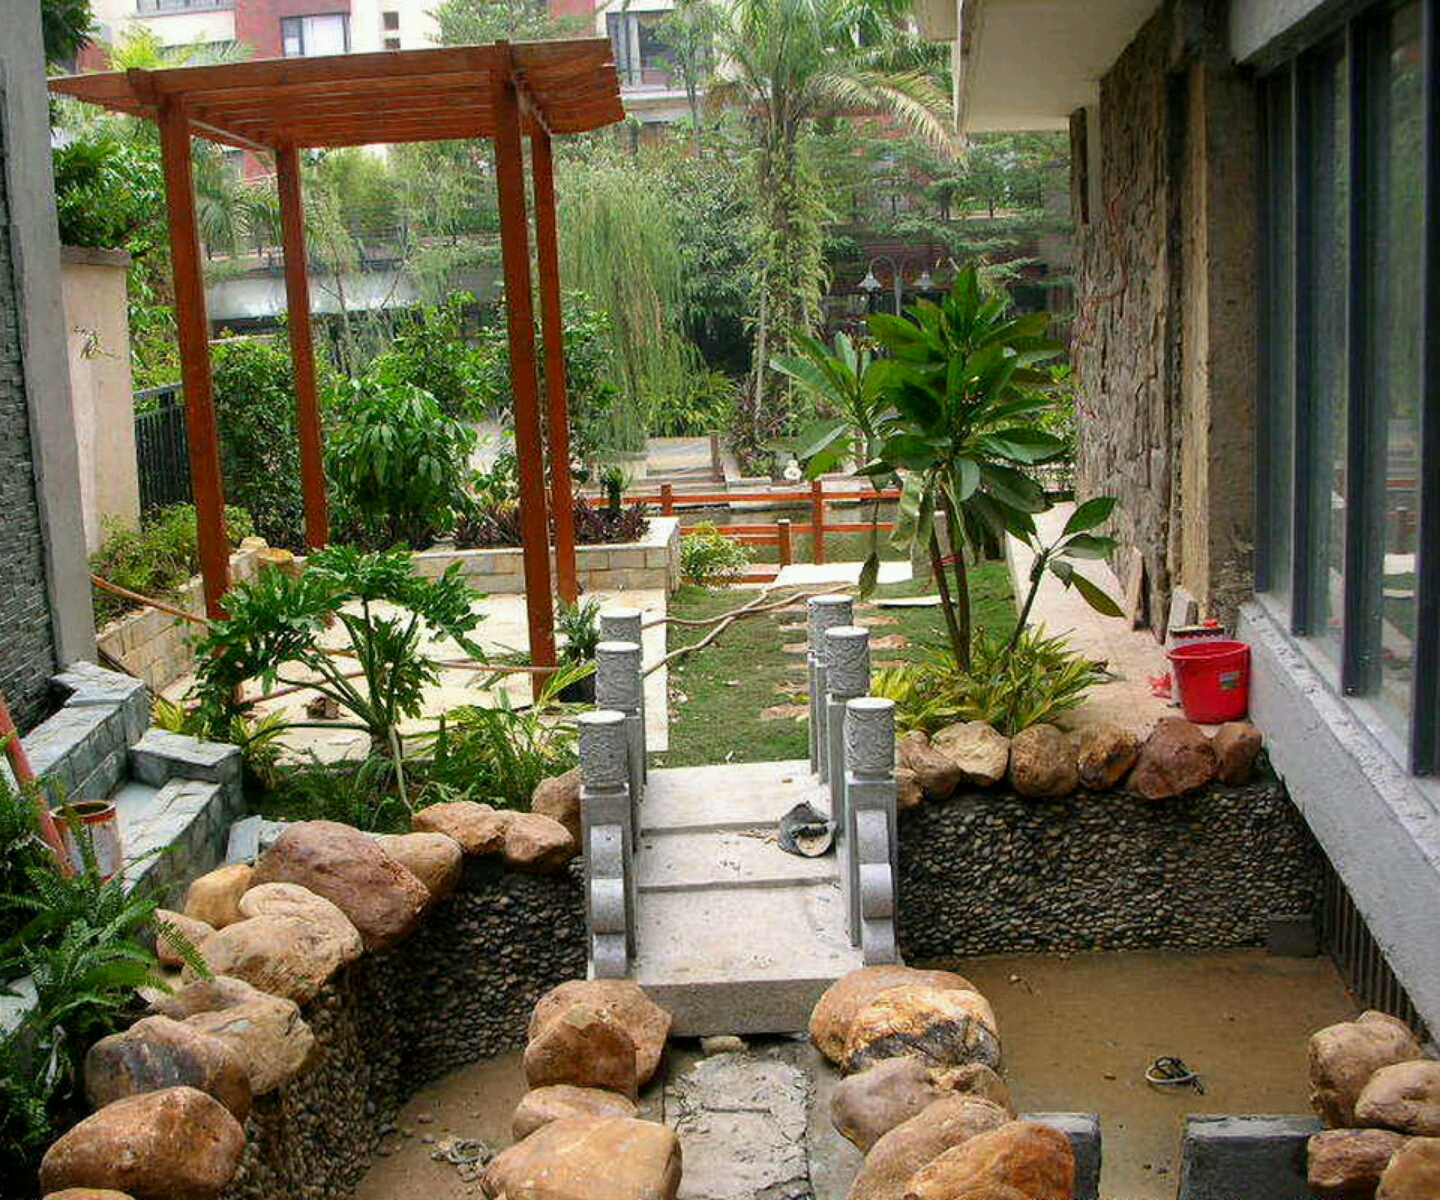 Home Garden Design Ideas Japanese Garden Design Ideas: Beautiful Home Gardens Designs Ideas.